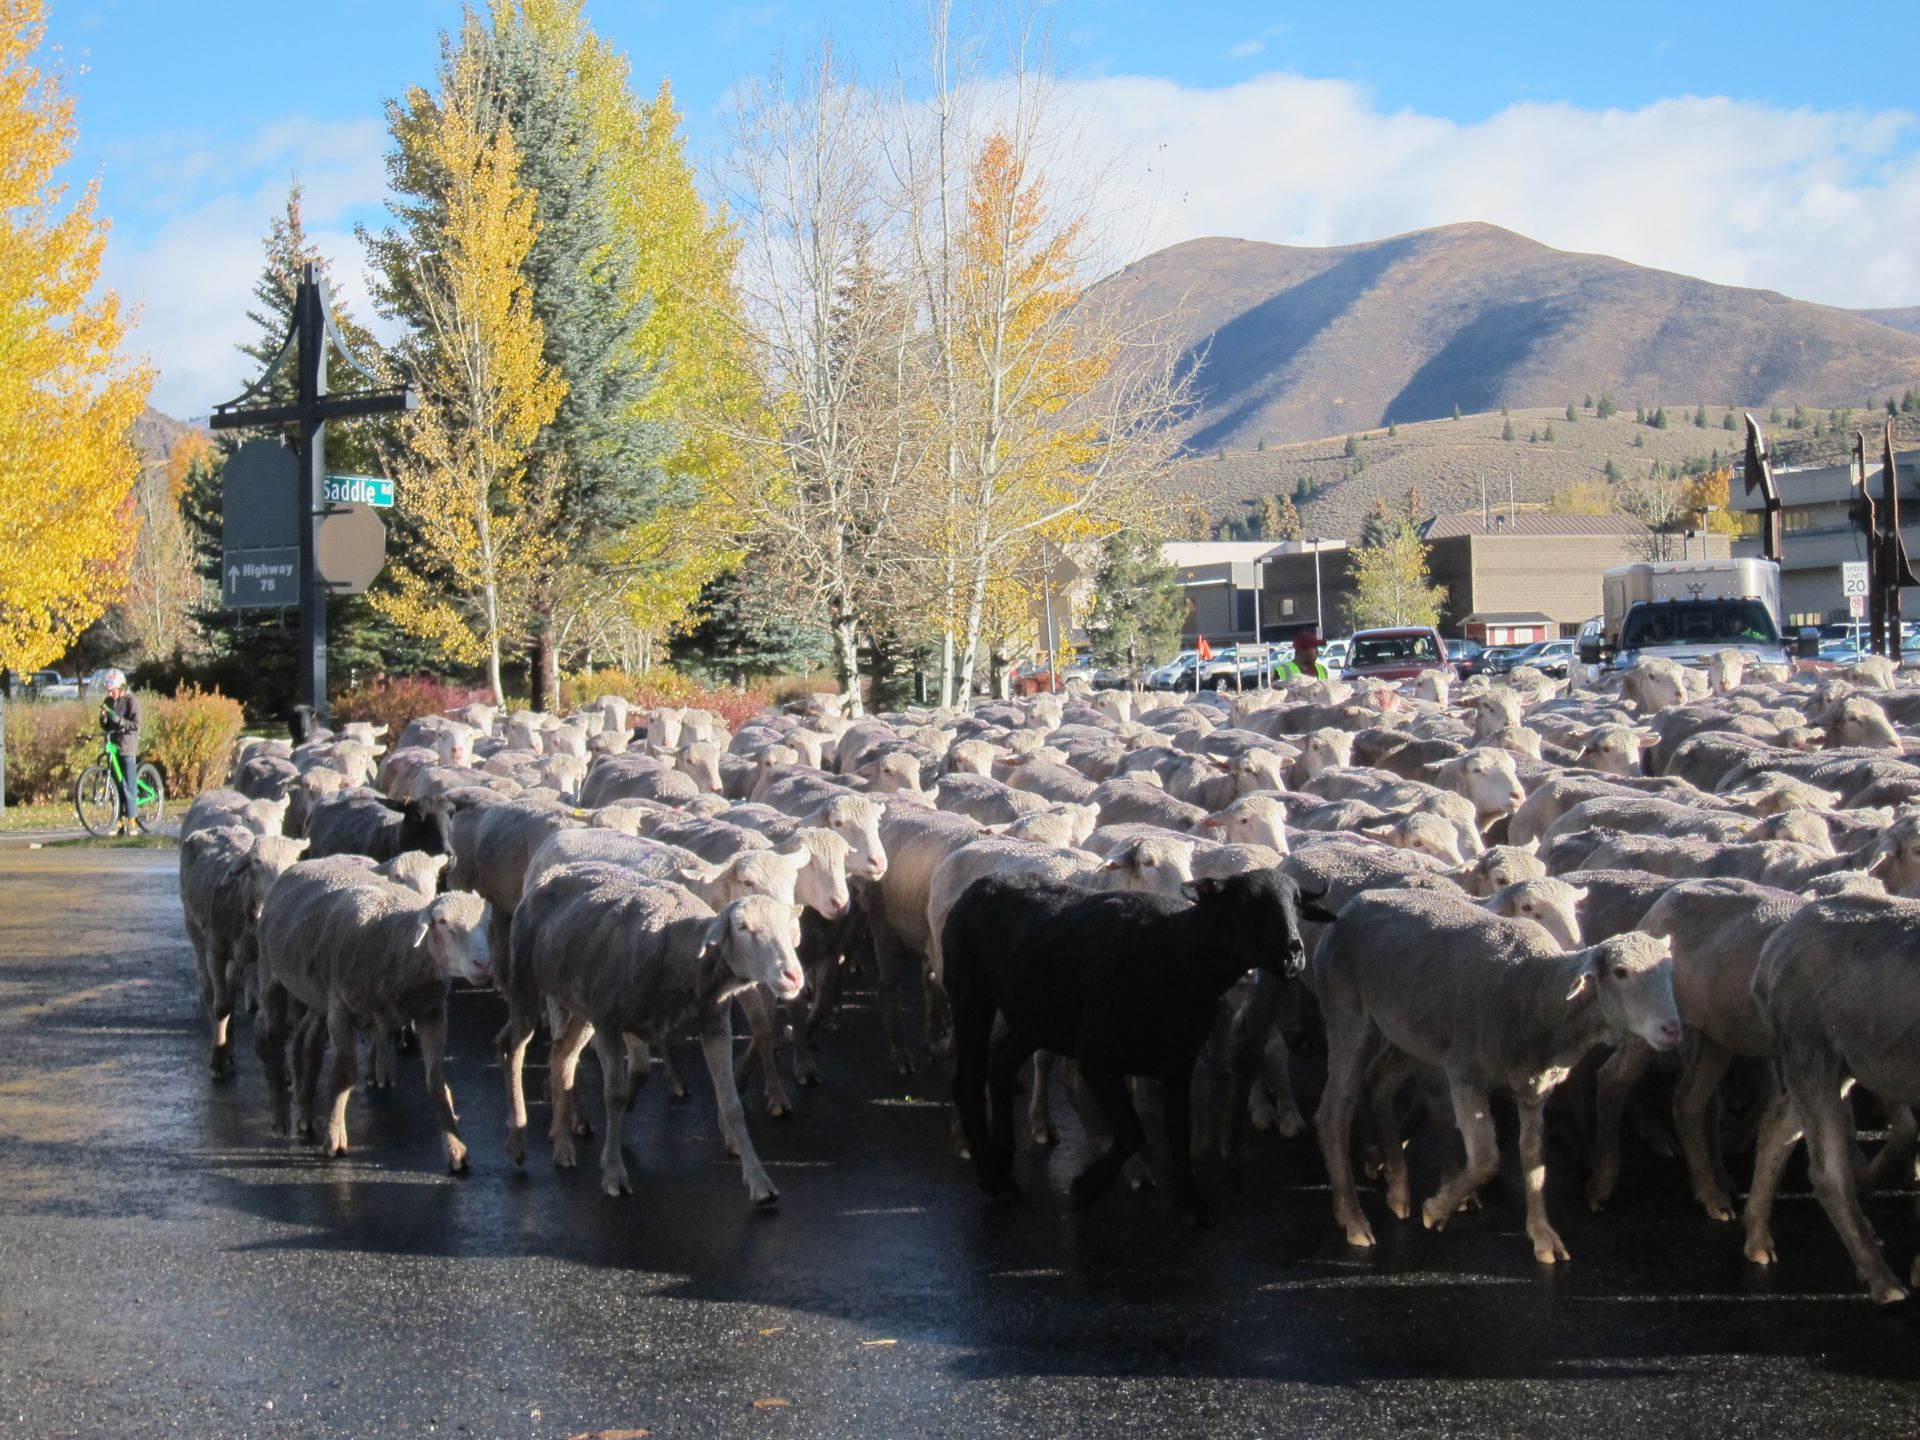 Personal Trailing of the Sheep